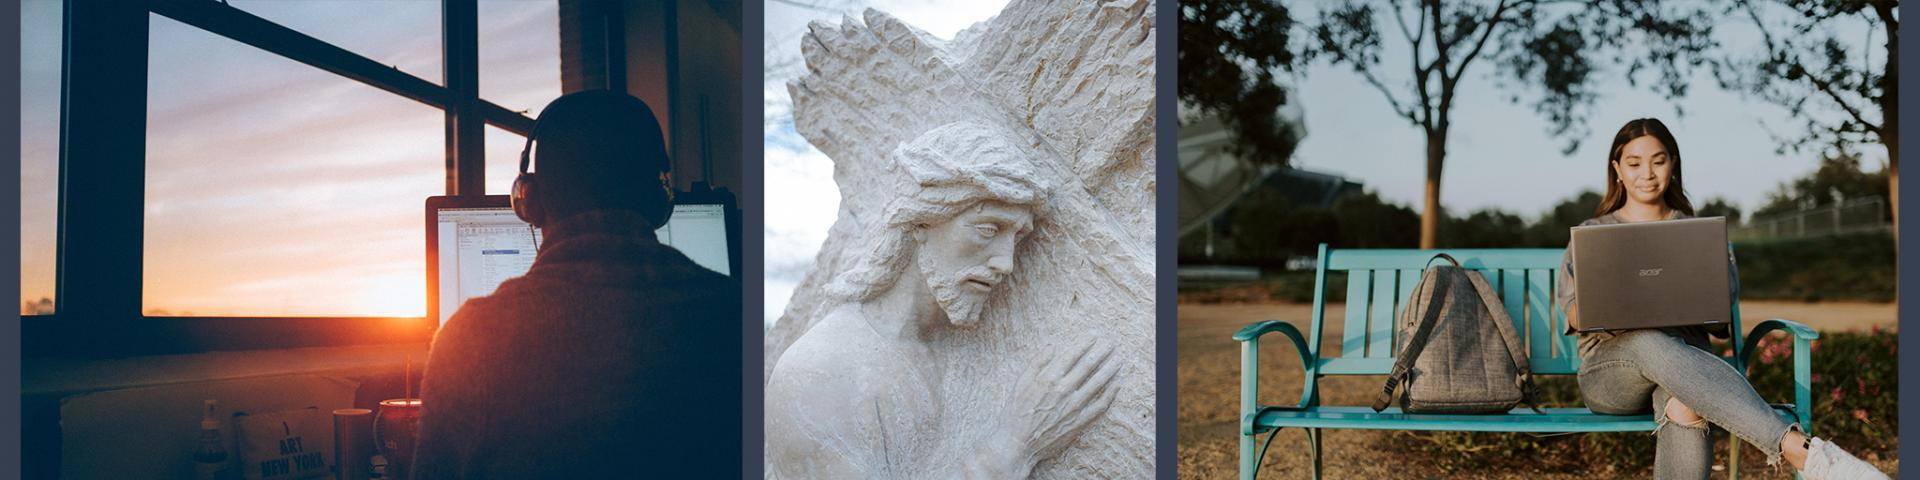 Two people looking at computer, picture of Jesus carrying a cross